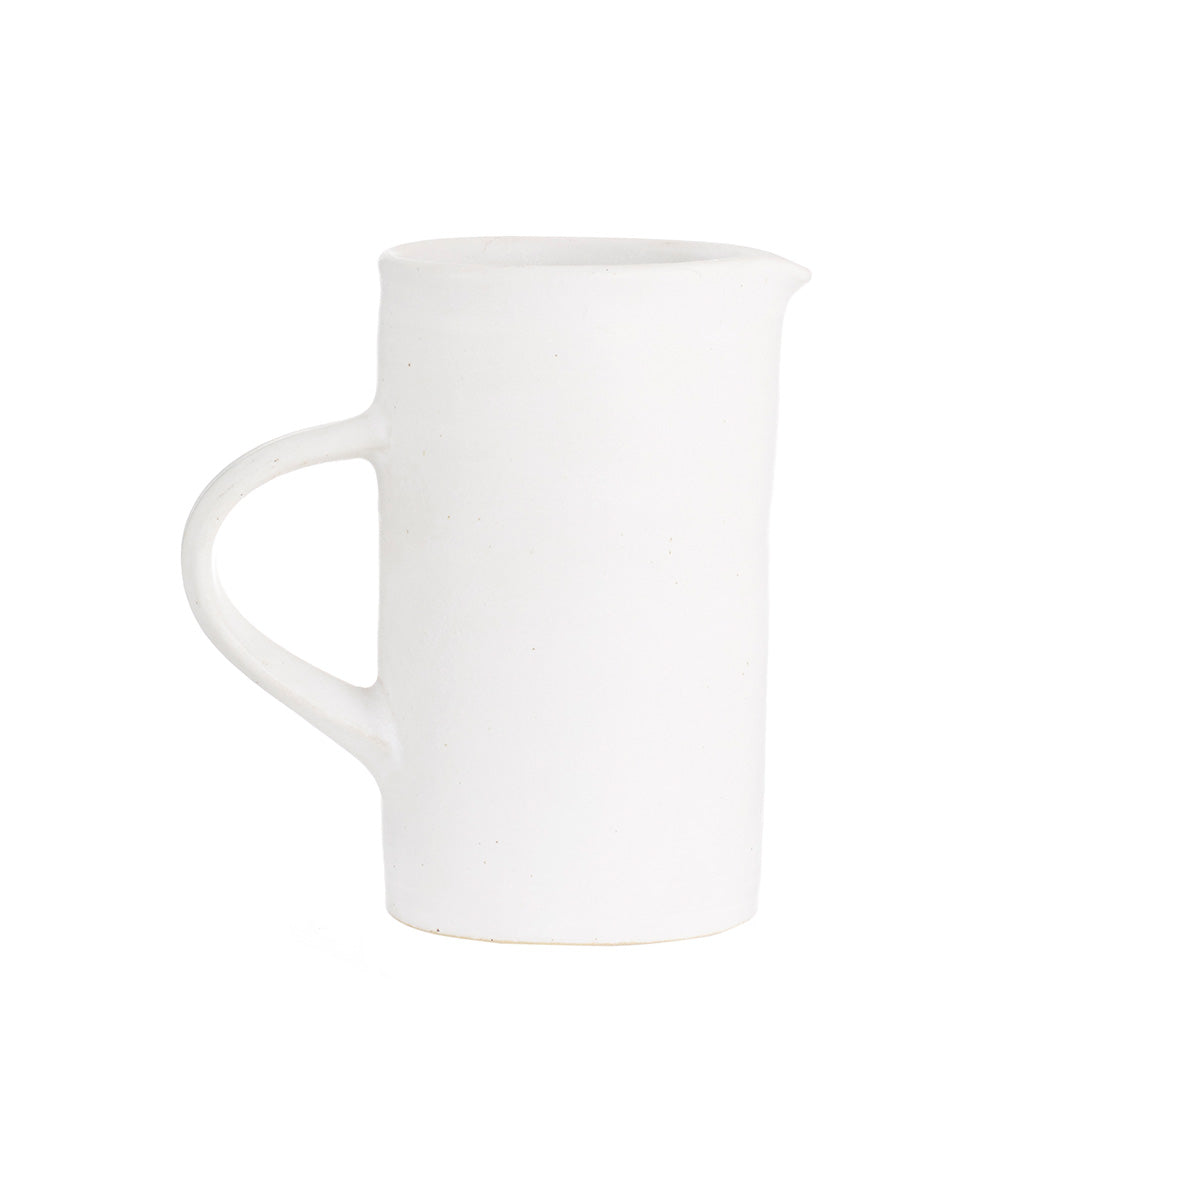 White Ceramics - Stoneware - Hand Thrown - Ceramics - Artisan - Concept Store - Medium Jug - White Ceramic Jug